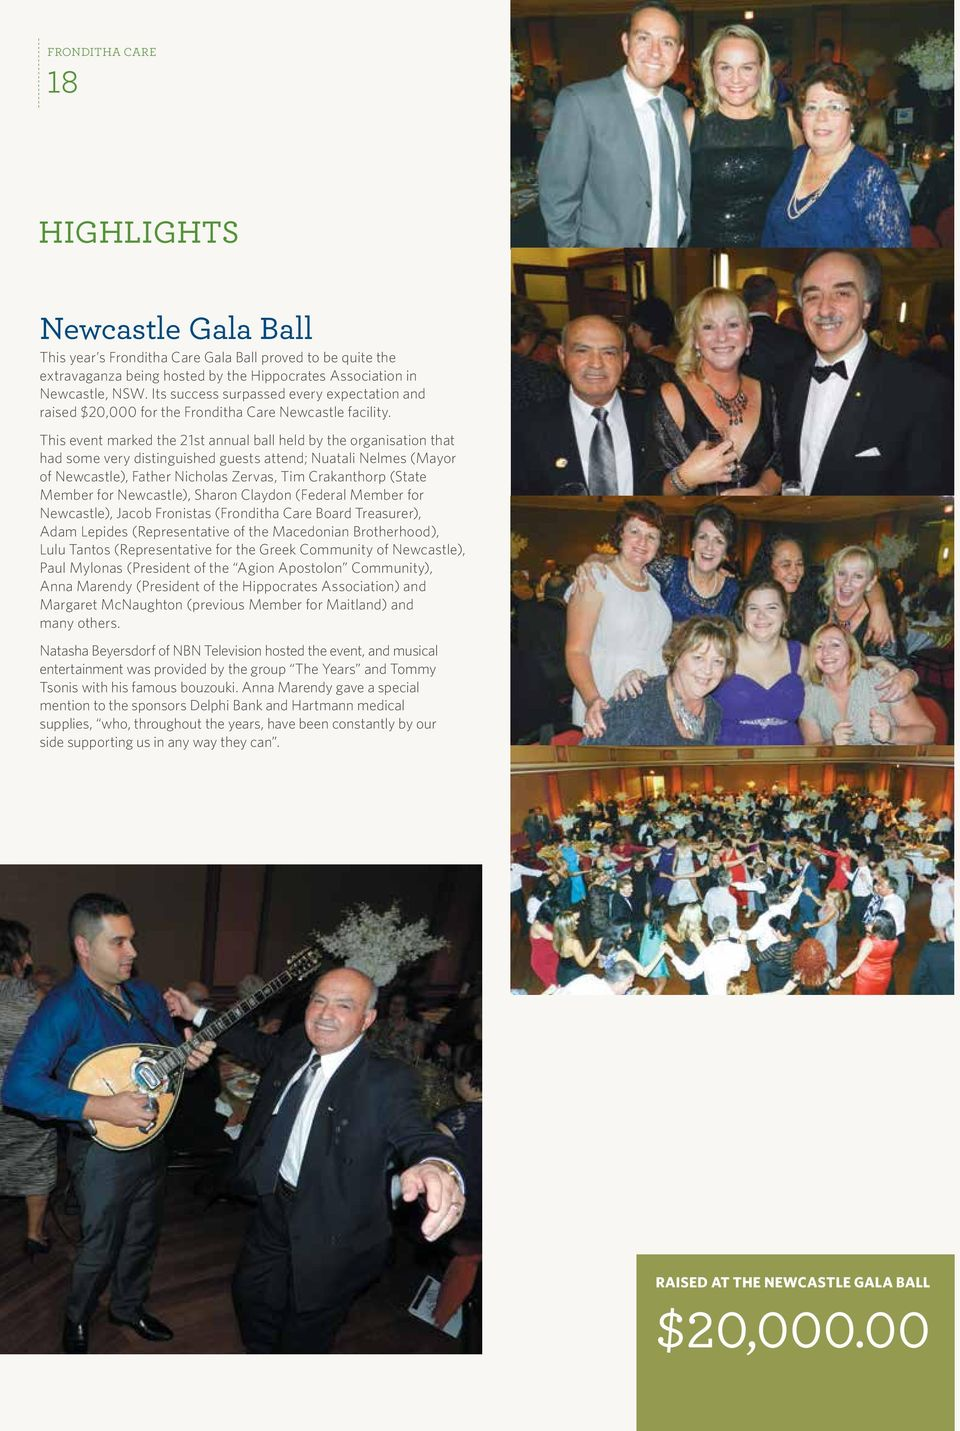 This event marked the 21st annual ball held by the organisation that had some very distinguished guests attend; Nuatali Nelmes (Mayor of Newcastle), Father Nicholas Zervas, Tim Crakanthorp (State